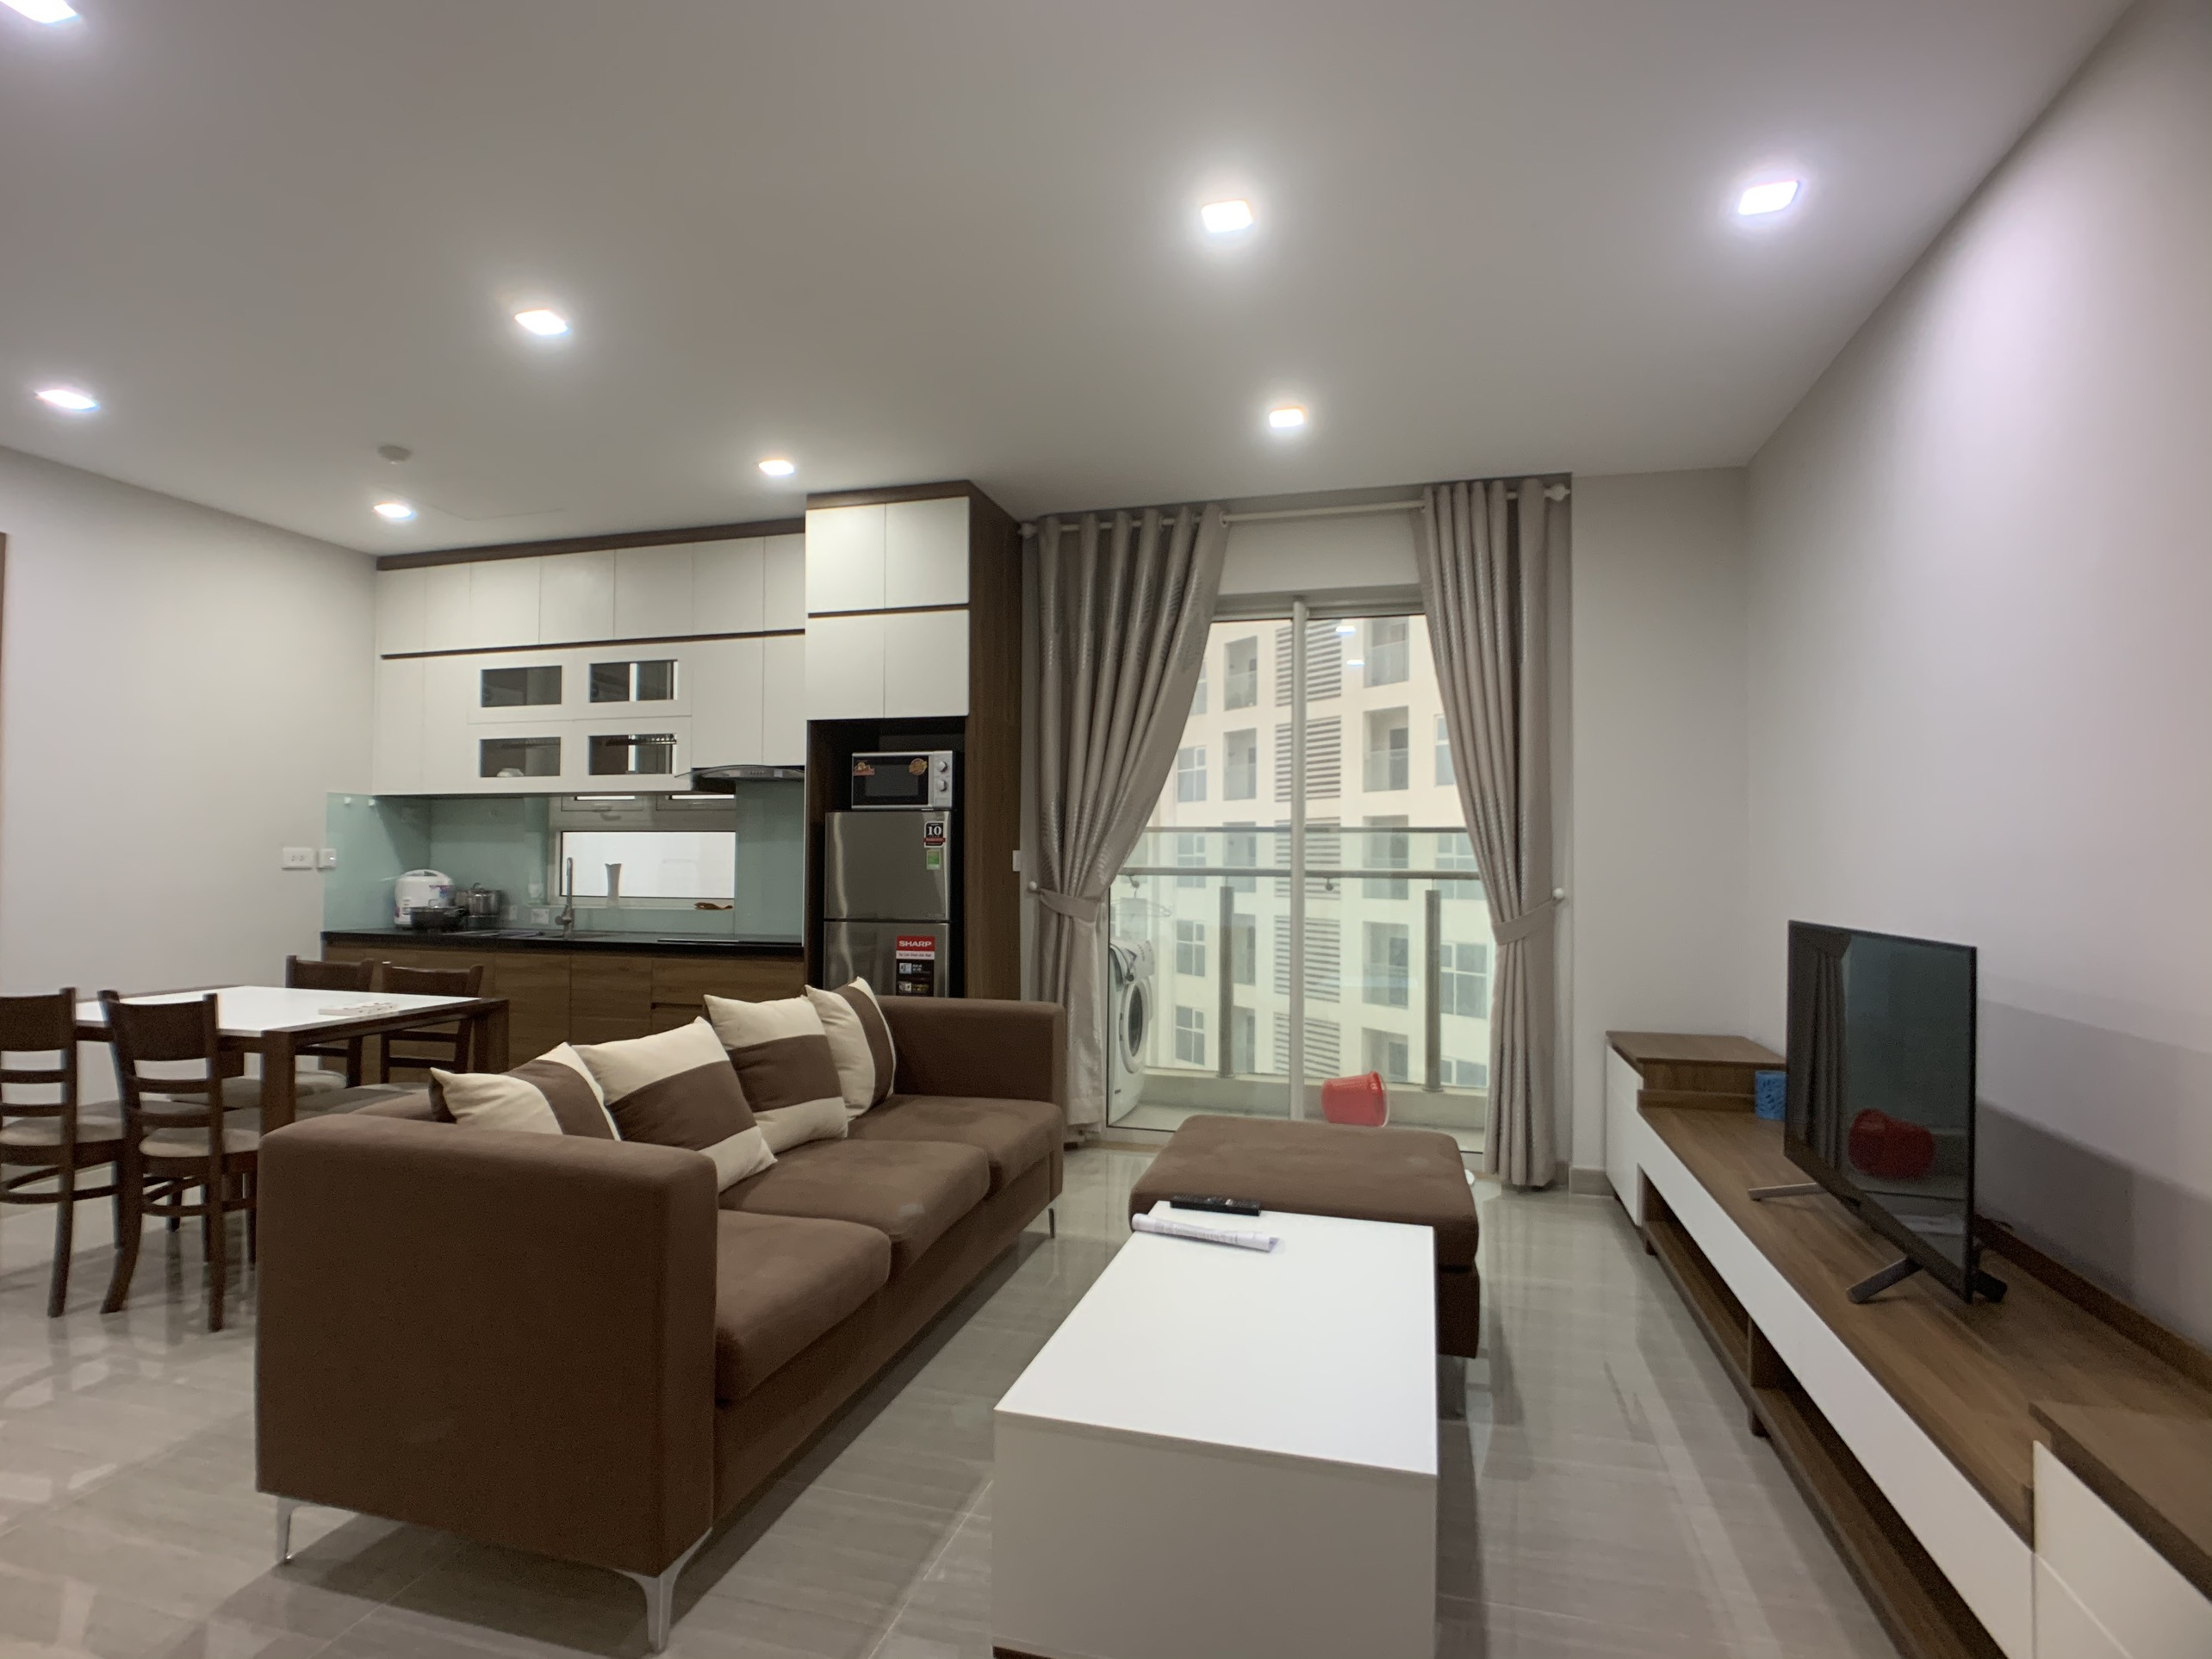 New Ciputra Apartment in L4 Block: 02 bedrooms with modern furniture, high floor